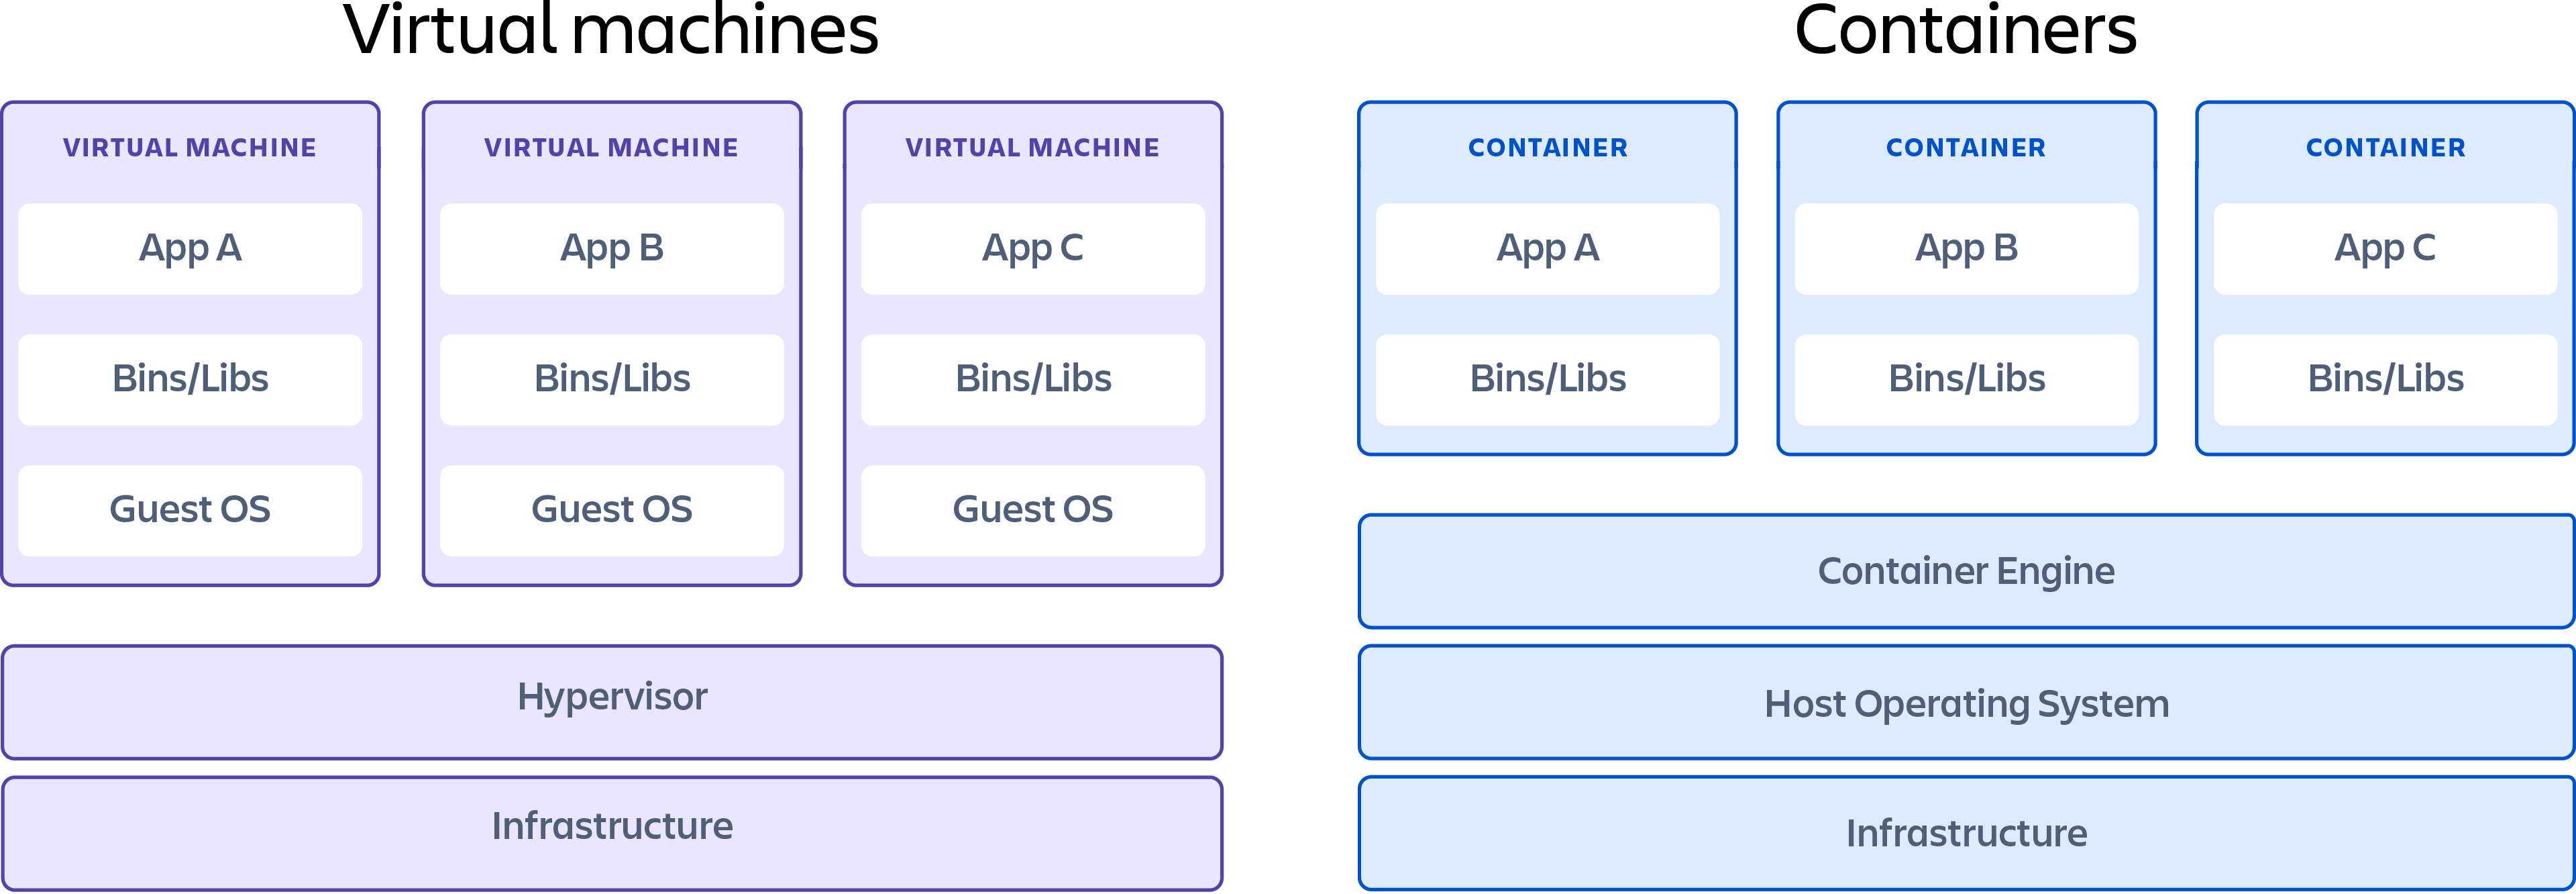 A container showing the differences between virtual machines and containers.